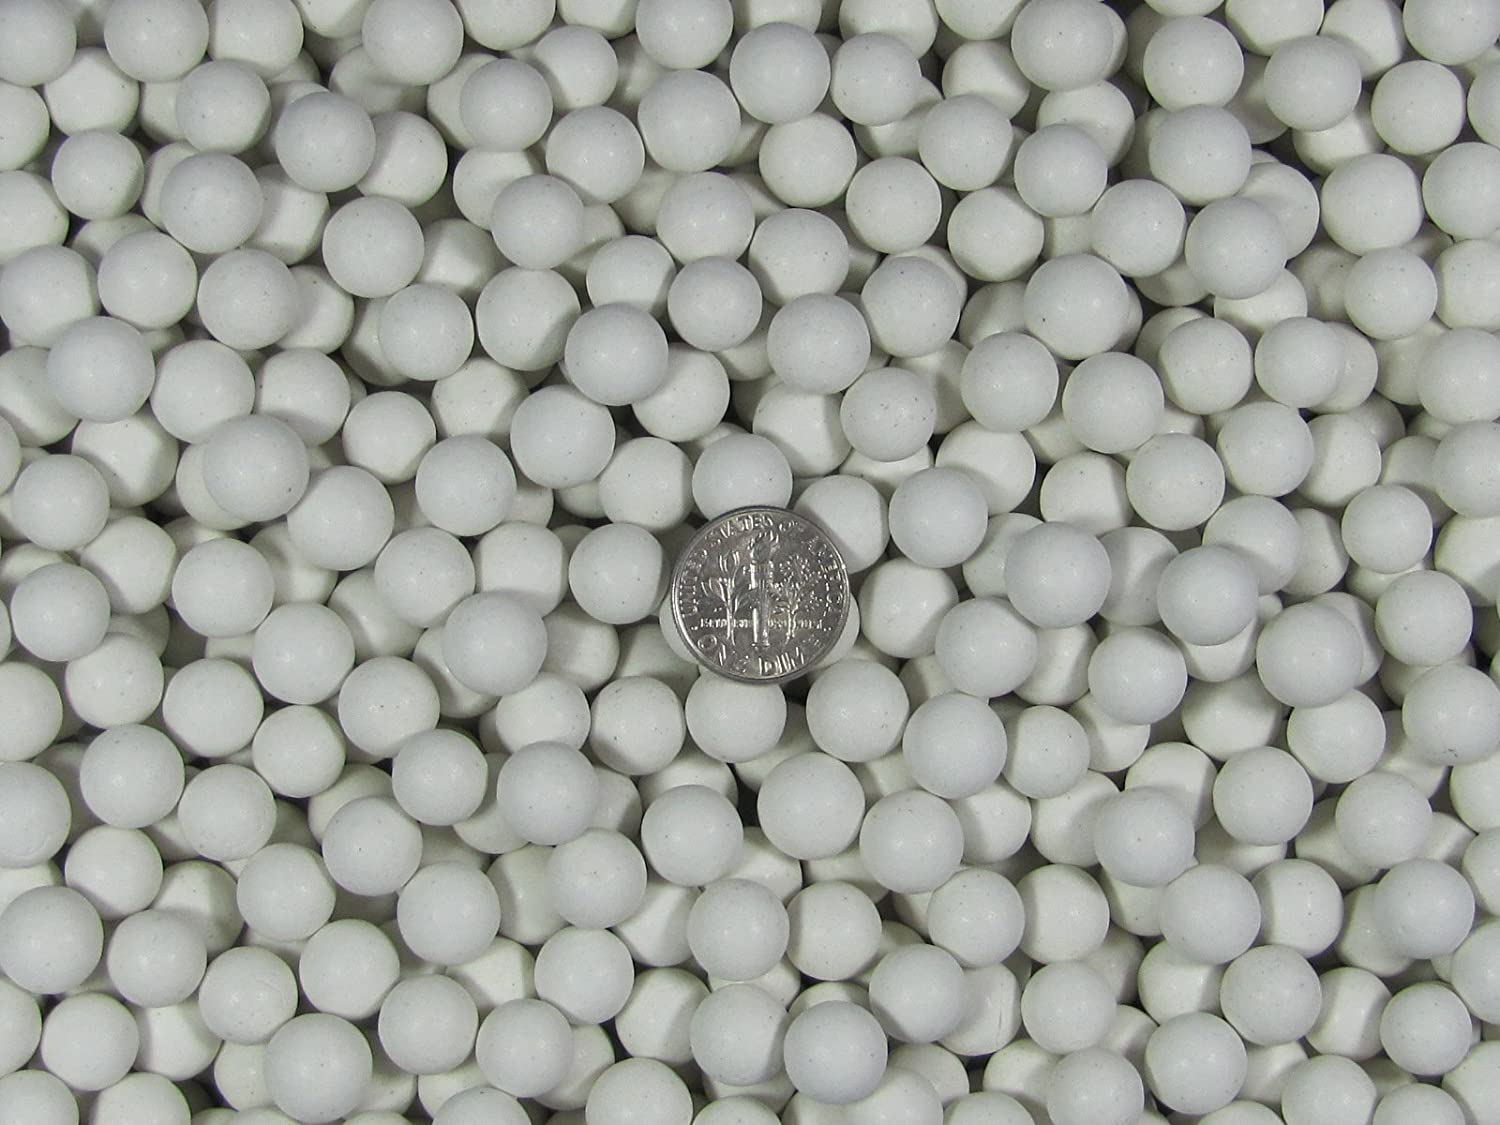 3 mm Polishing Sphere Ceramic Porcelain Tumbling Media Non-Abrasive 1 Lb